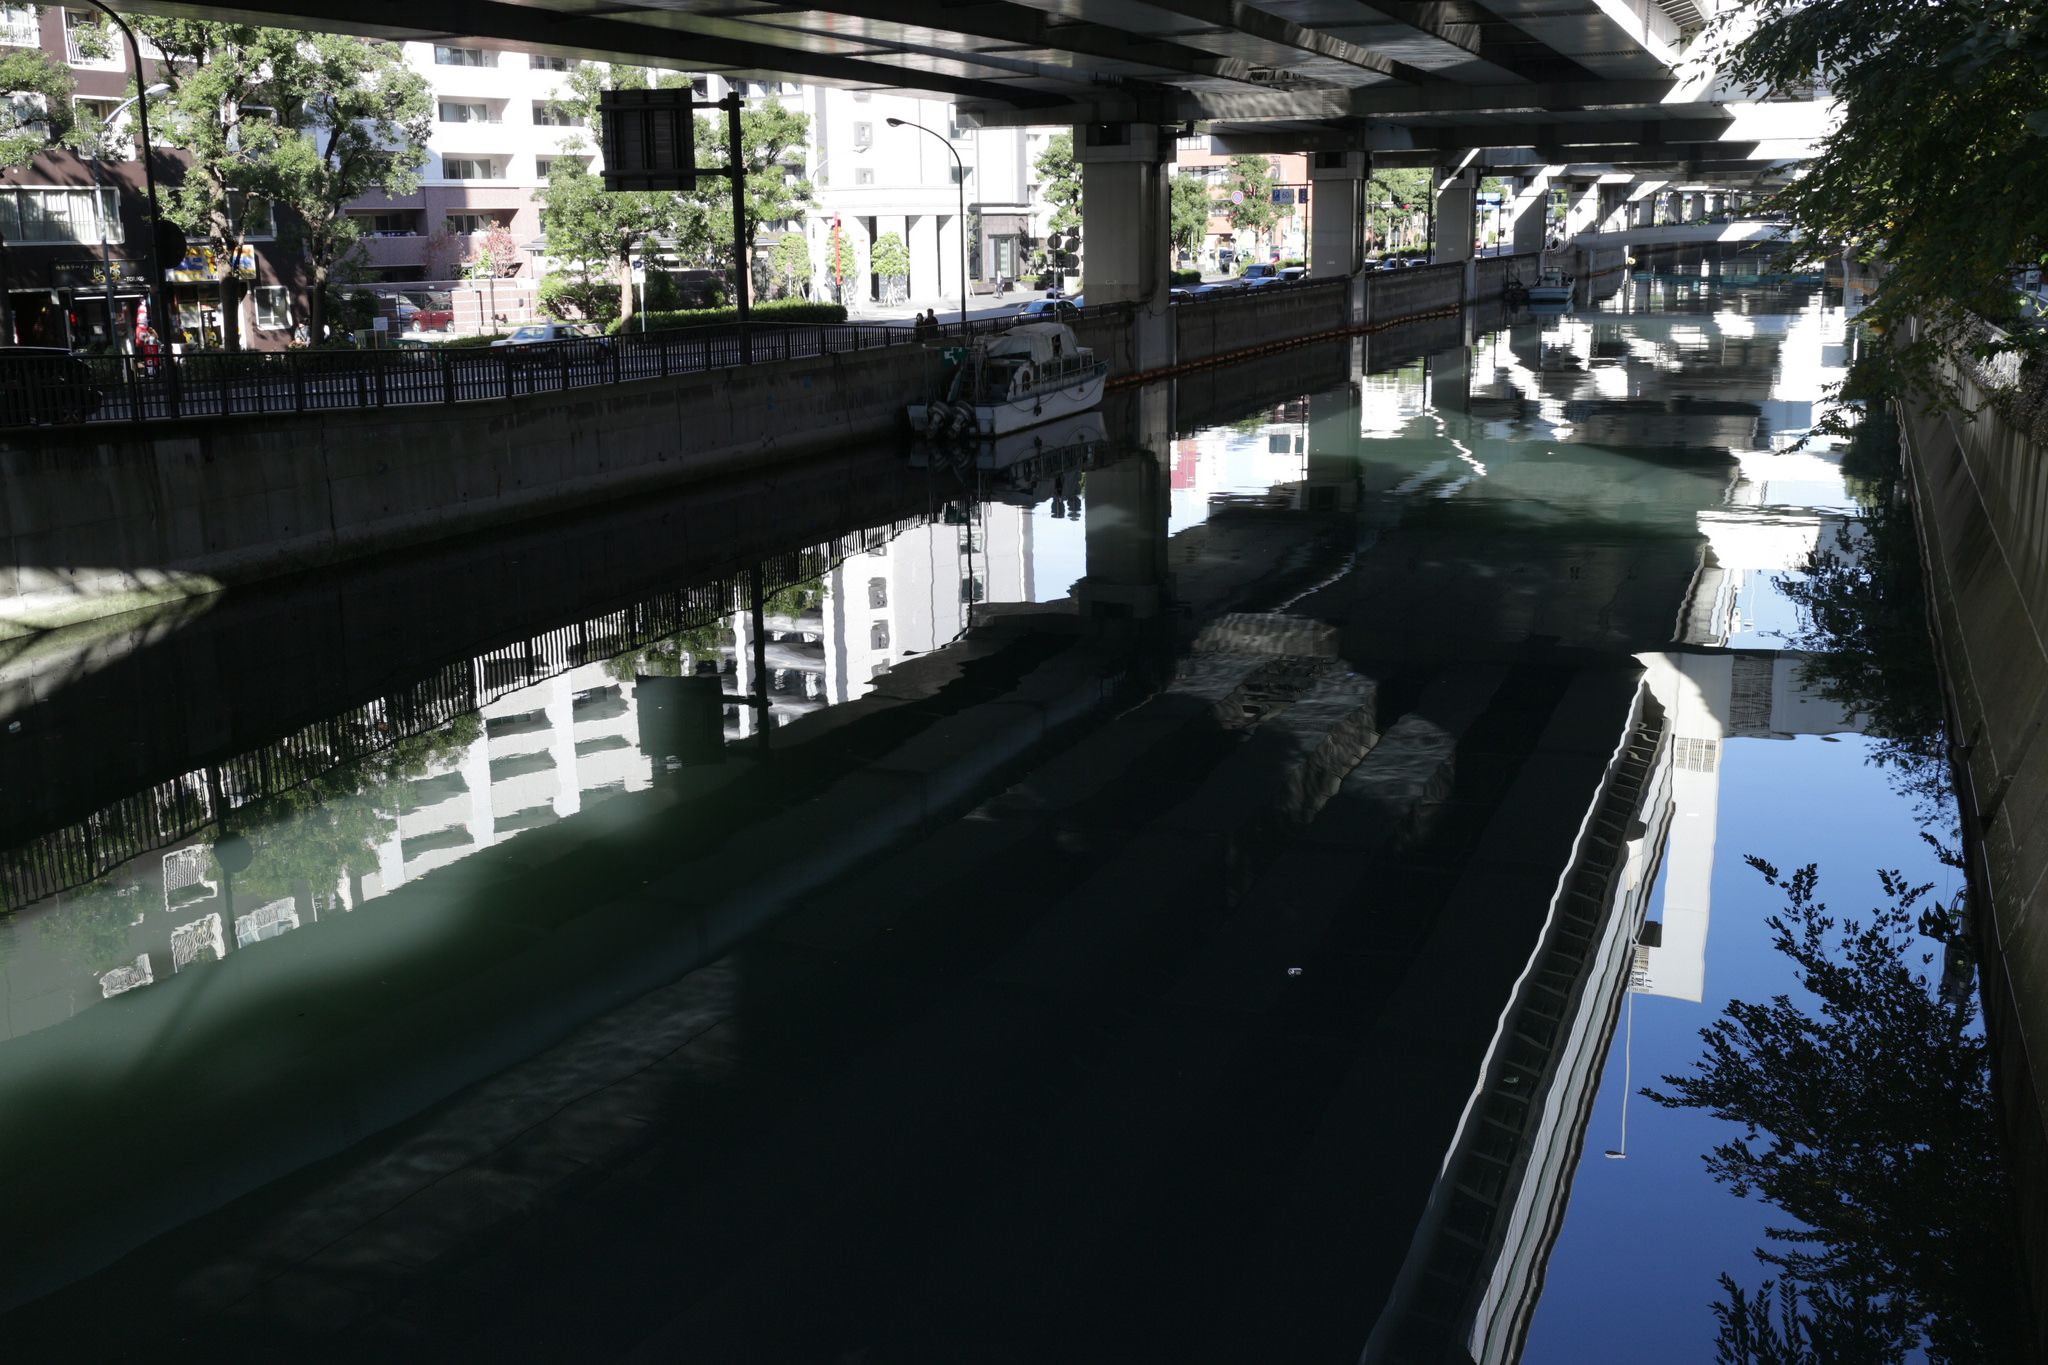 https://flic.kr/p/NPWWXh   canal   and an overhead motorway.